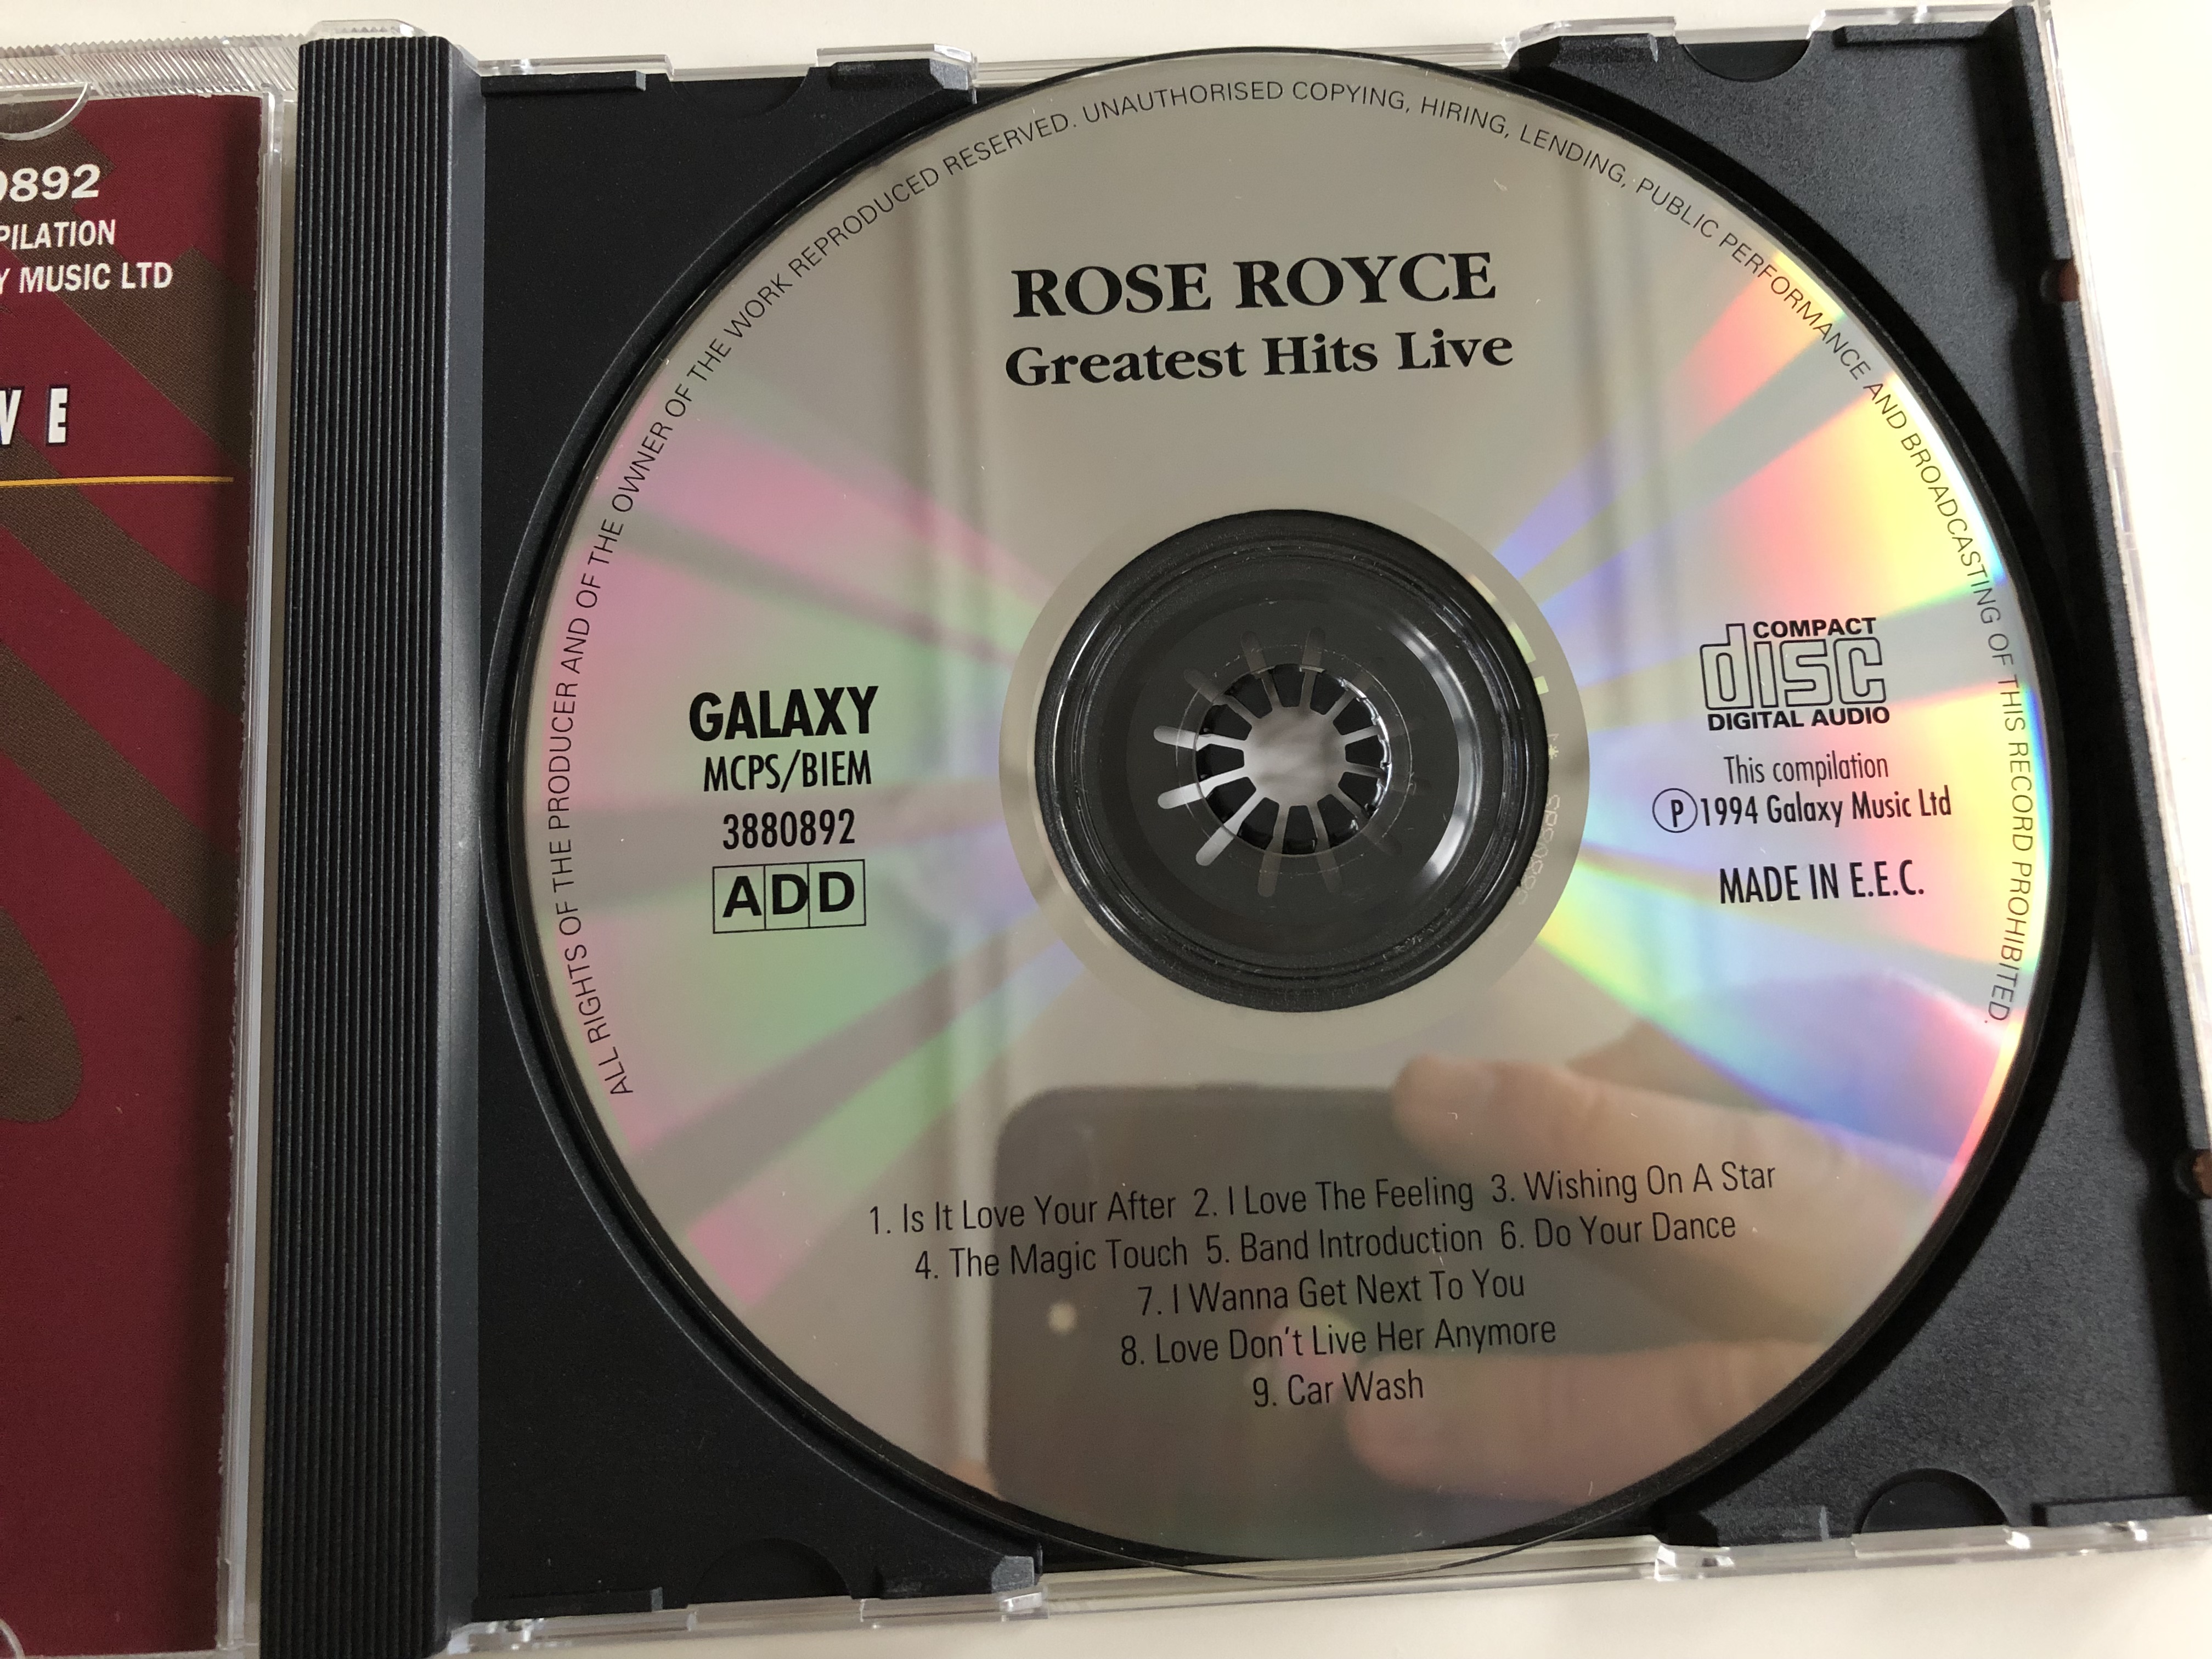 rose-royce-greatest-hits-live-audio-cd-1994-is-it-love-you-re-after-wishing-on-a-star-i-wanna-get-next-to-you-love-don-t-live-here-anymore-car-wash-the-starlight-collection-3-.jpg